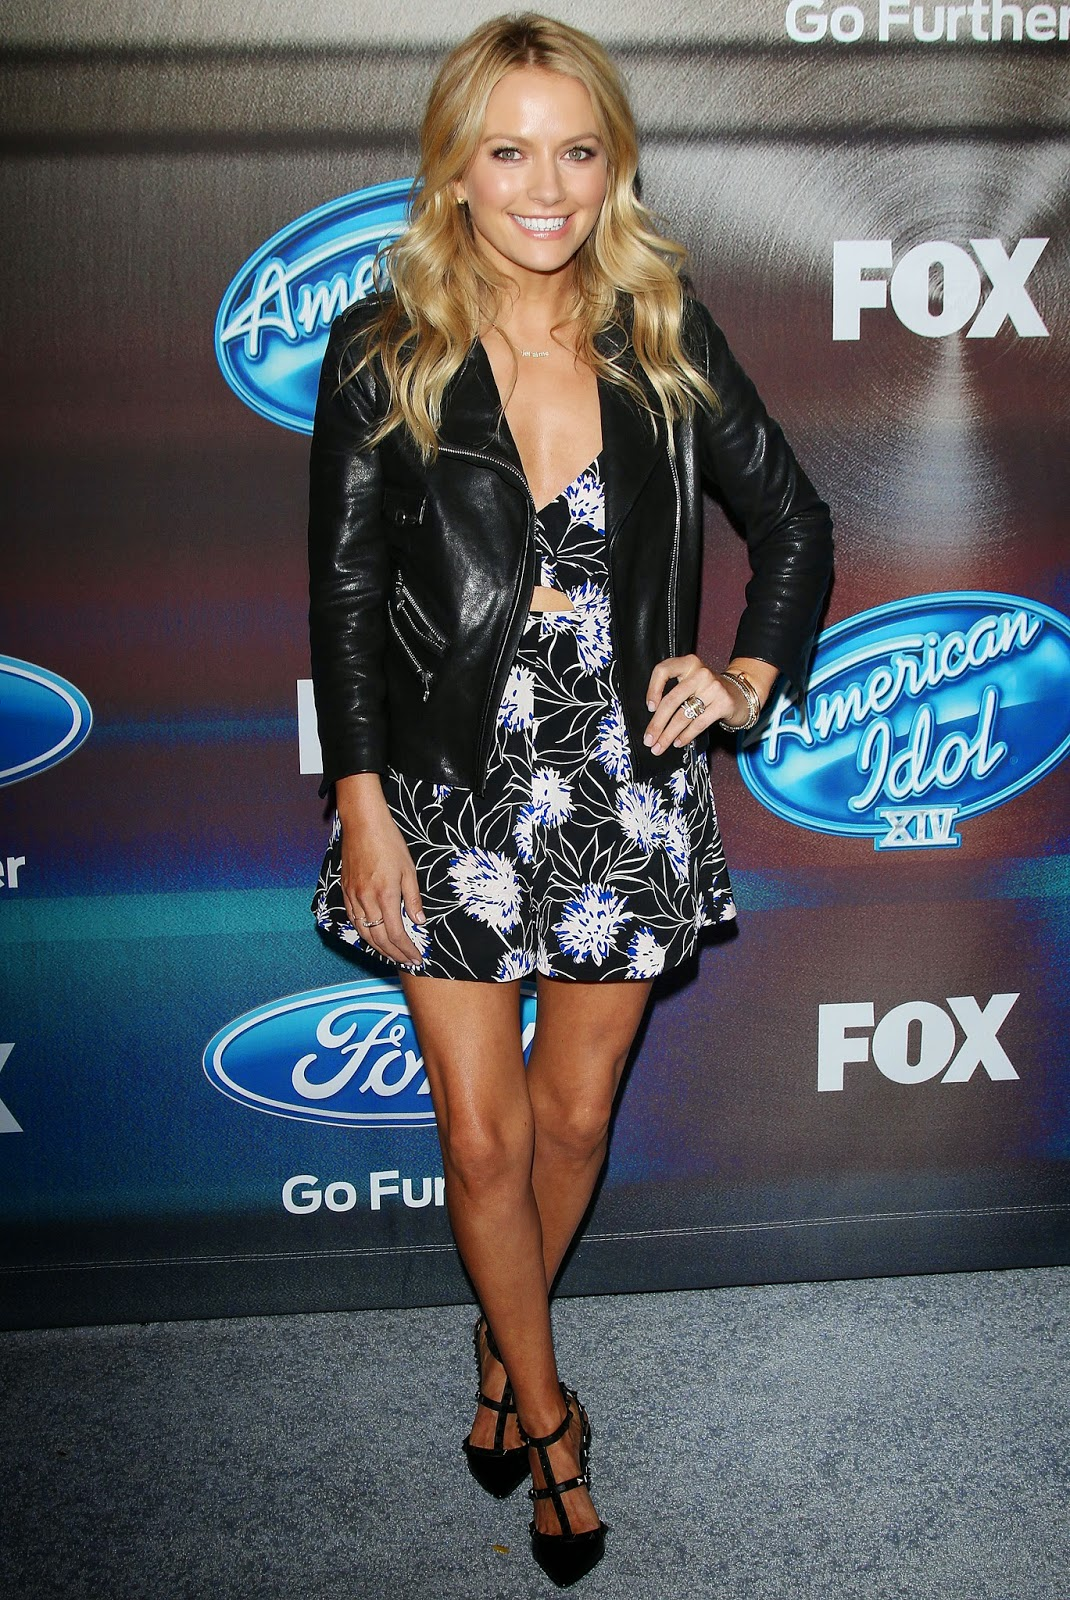 Actress @ Becki Newton - 'American Idol XIV' finalist party in LA